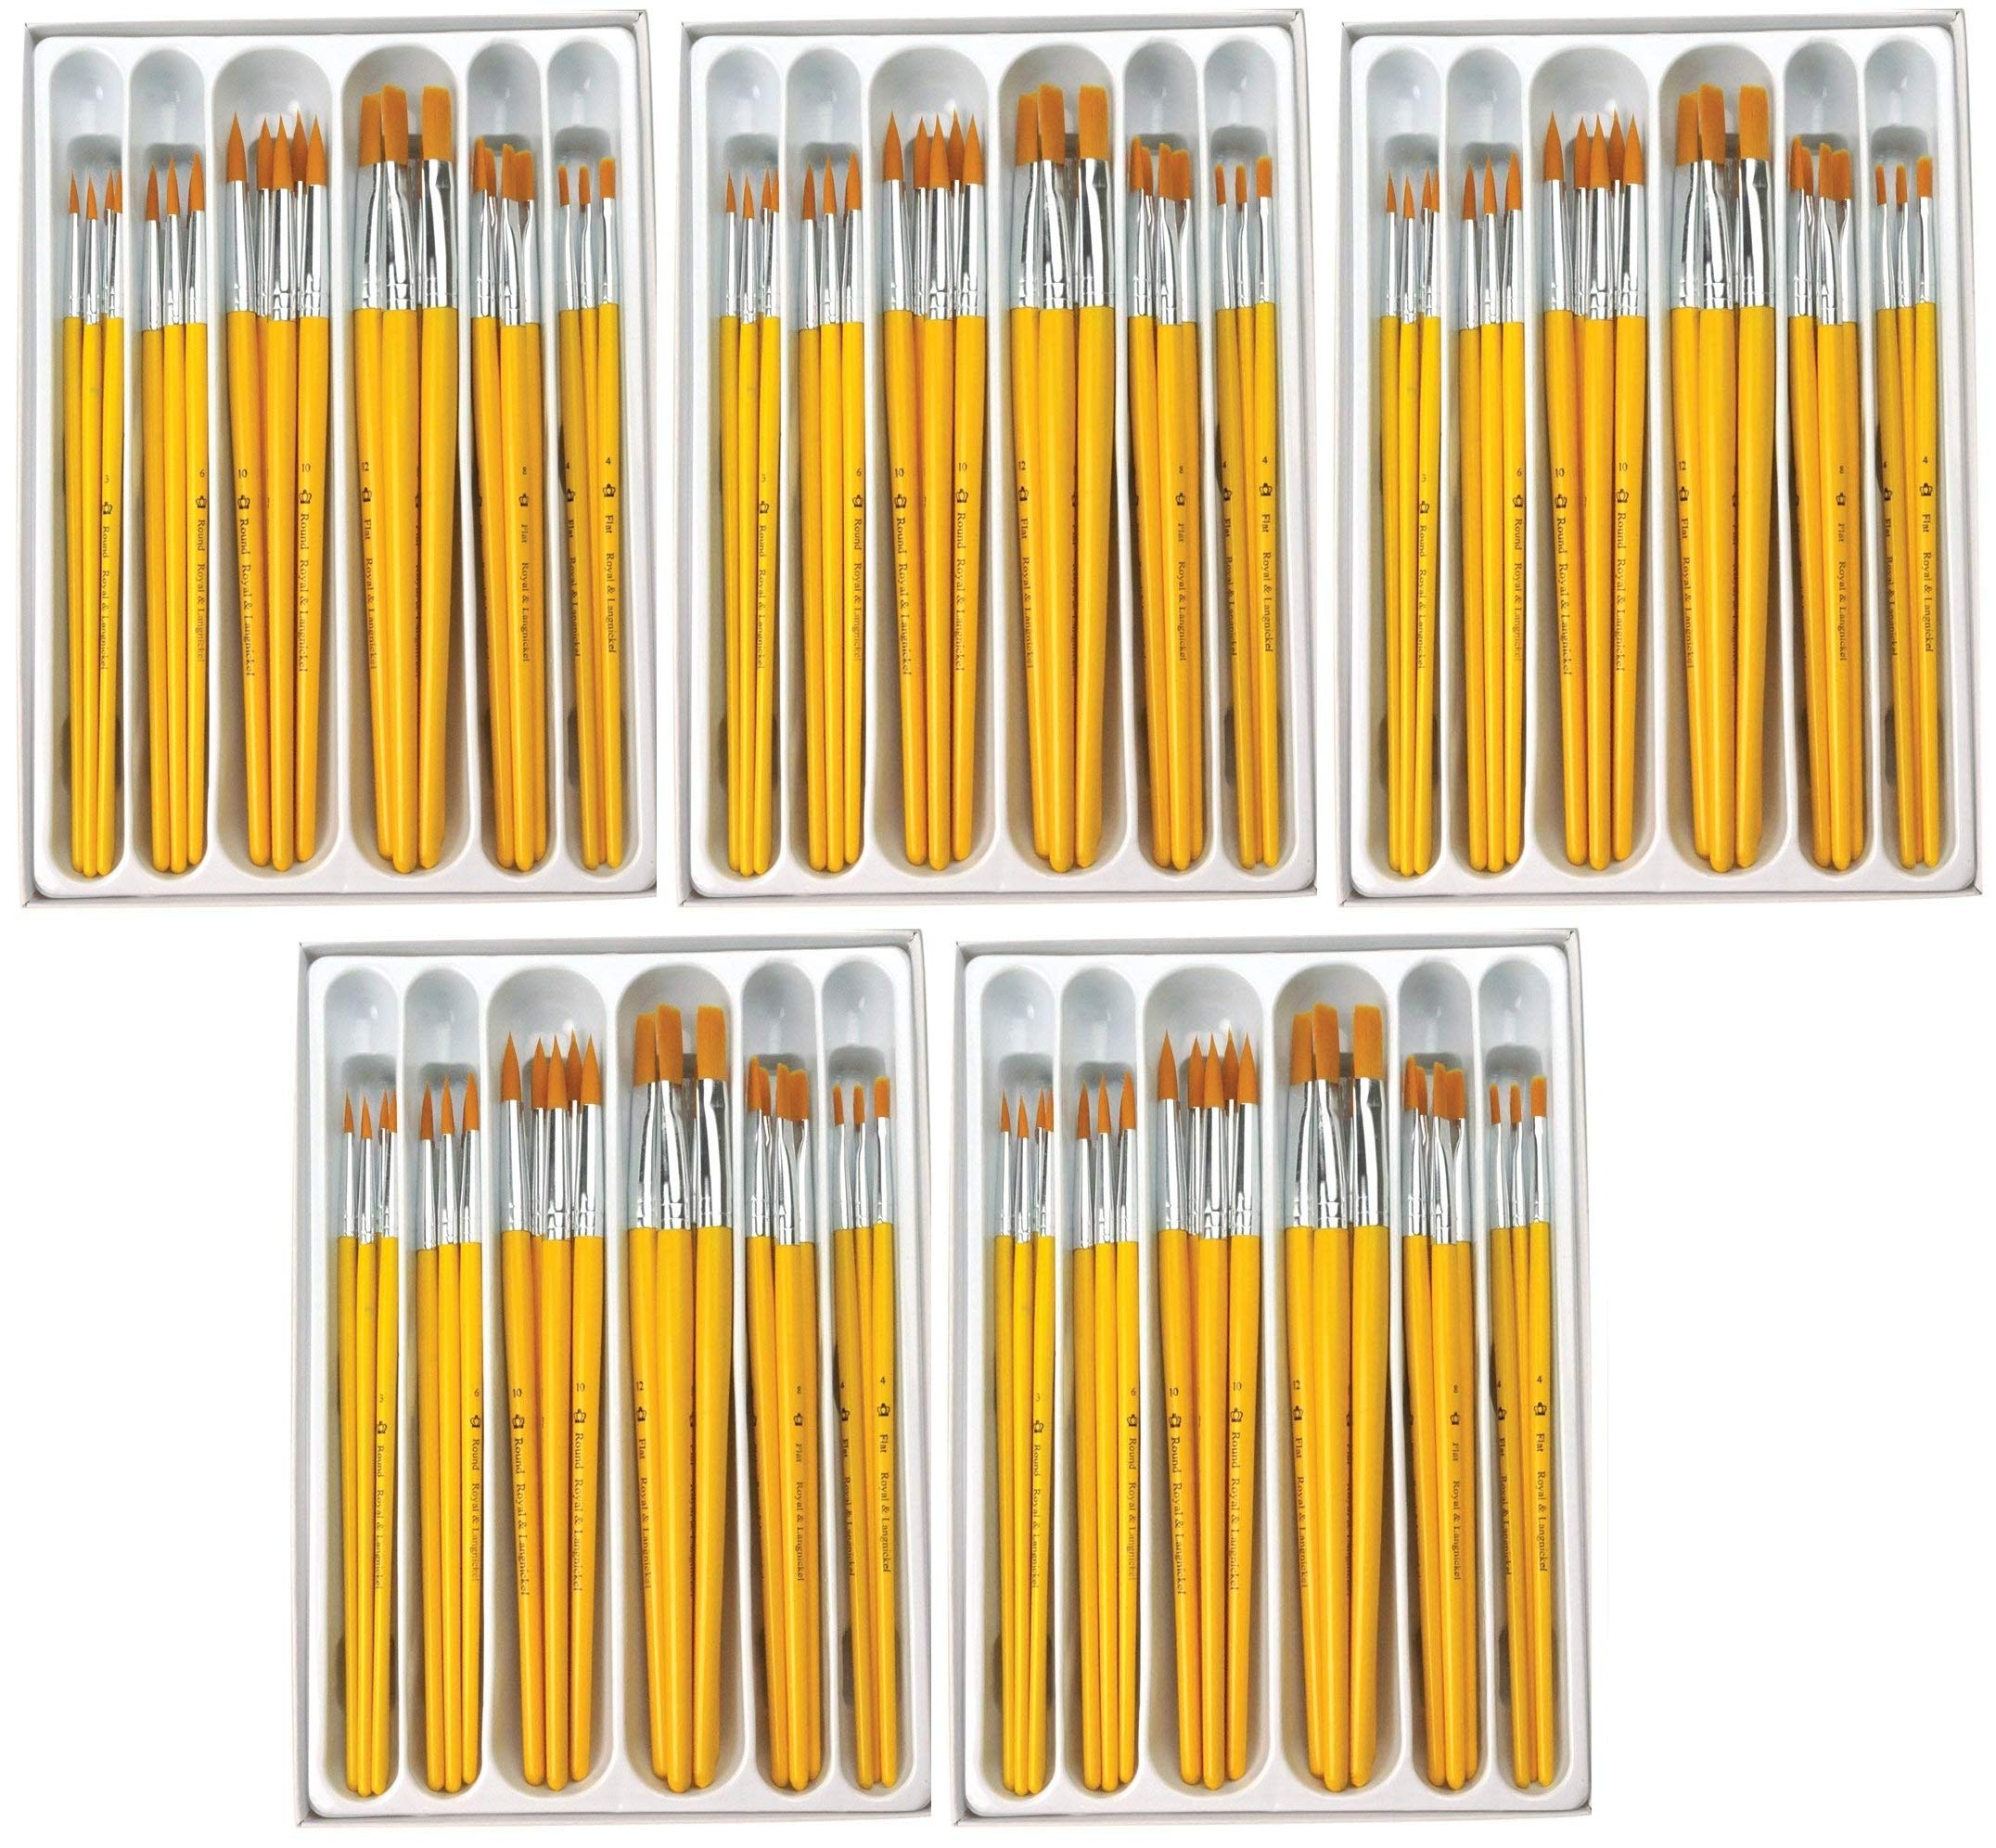 Royal Brush Taklon Hair Classroom Value Pack, Assorted Size, Pack of 30 (Вundlе оf Fіvе)